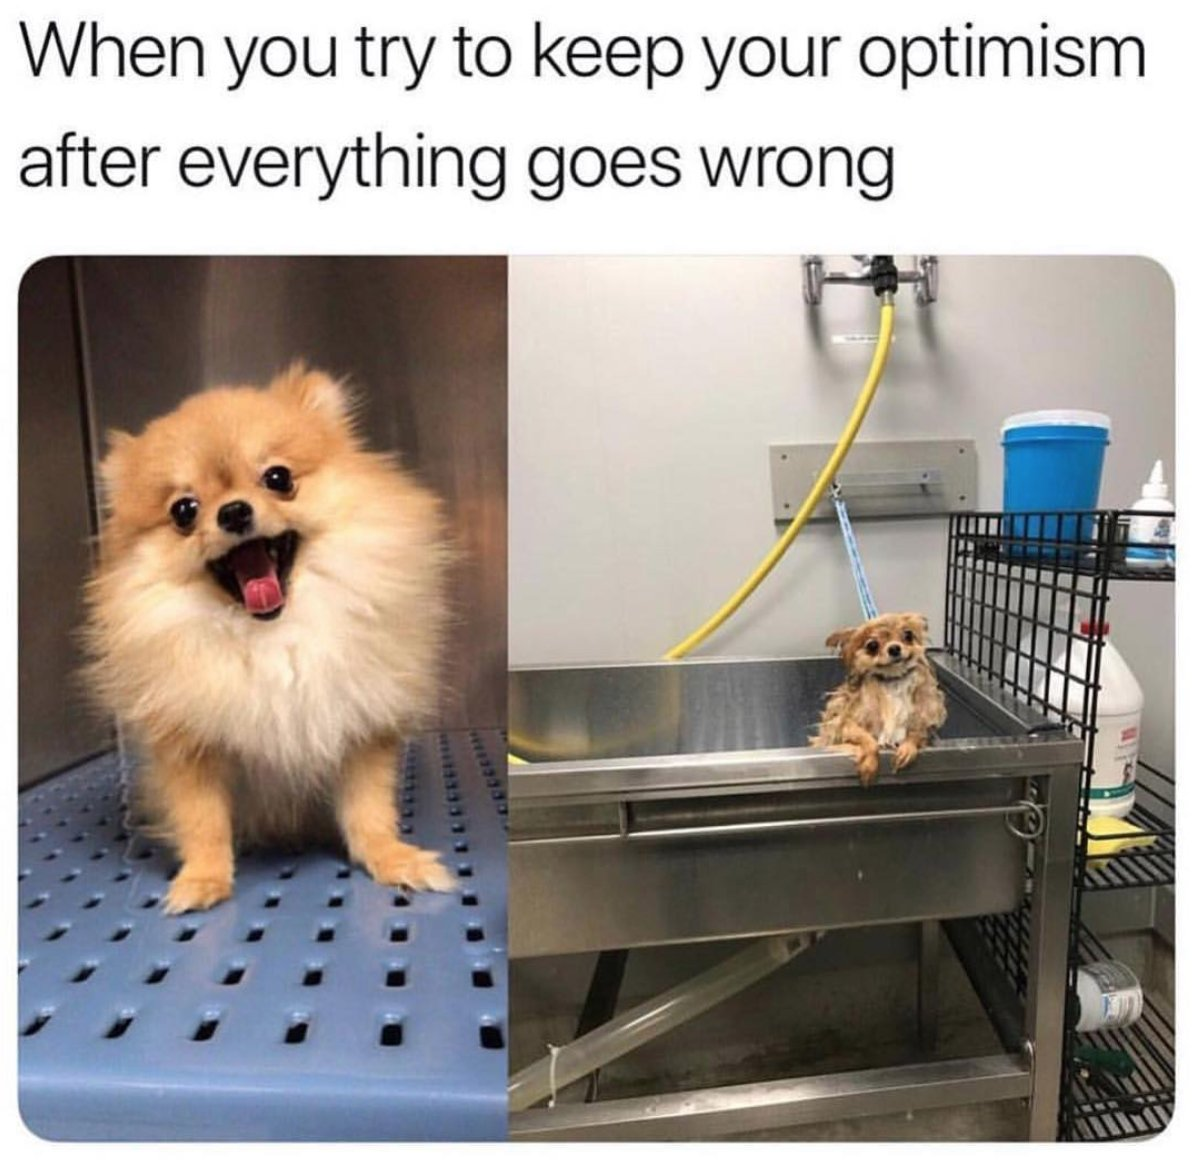 When you try to keep your optimism after everything goes wrong